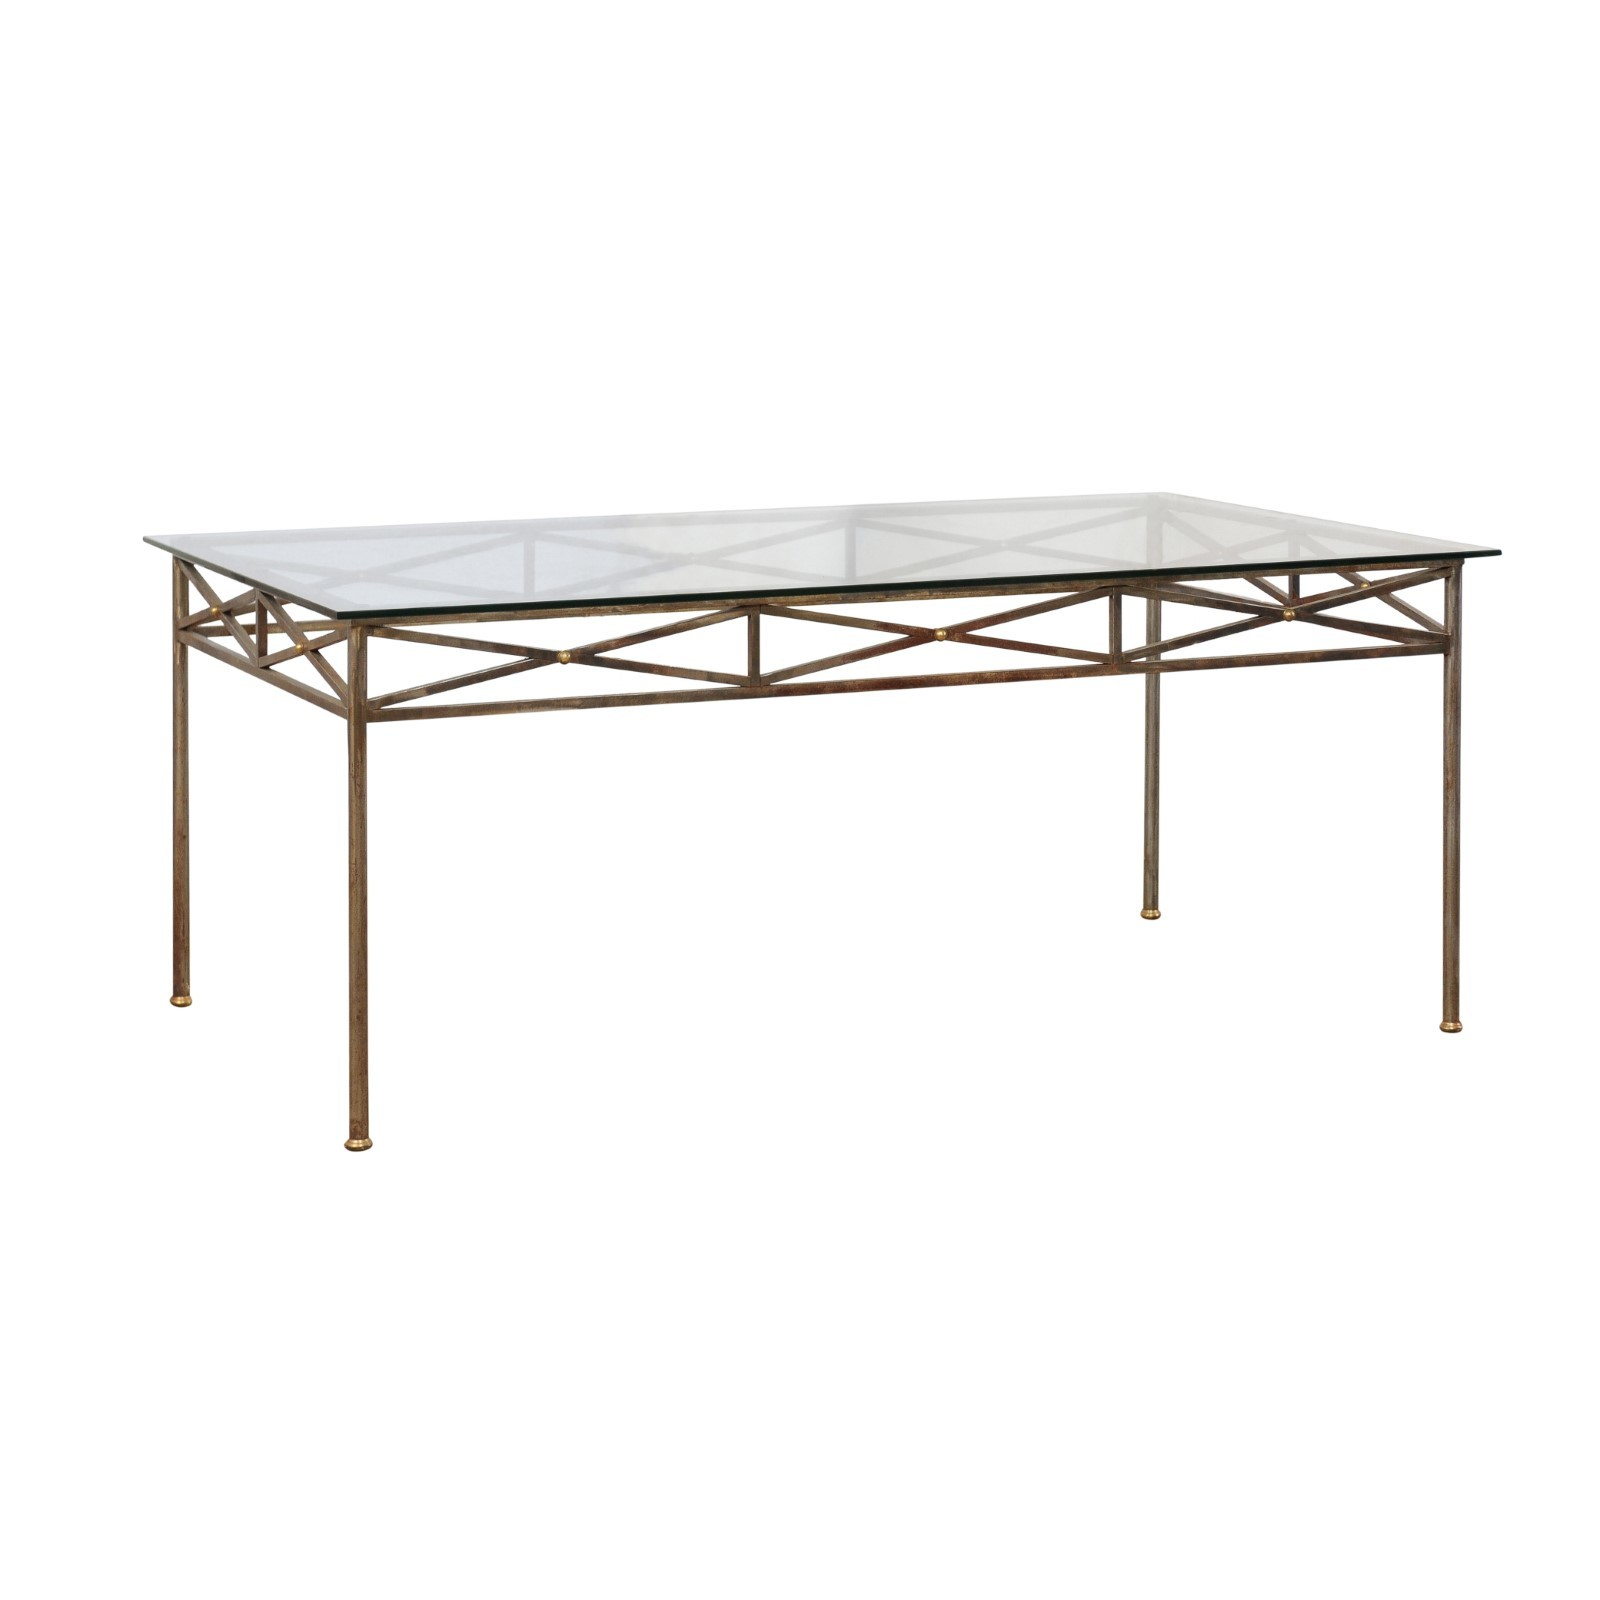 A Glass Top Table w/ Neoclassical Elements